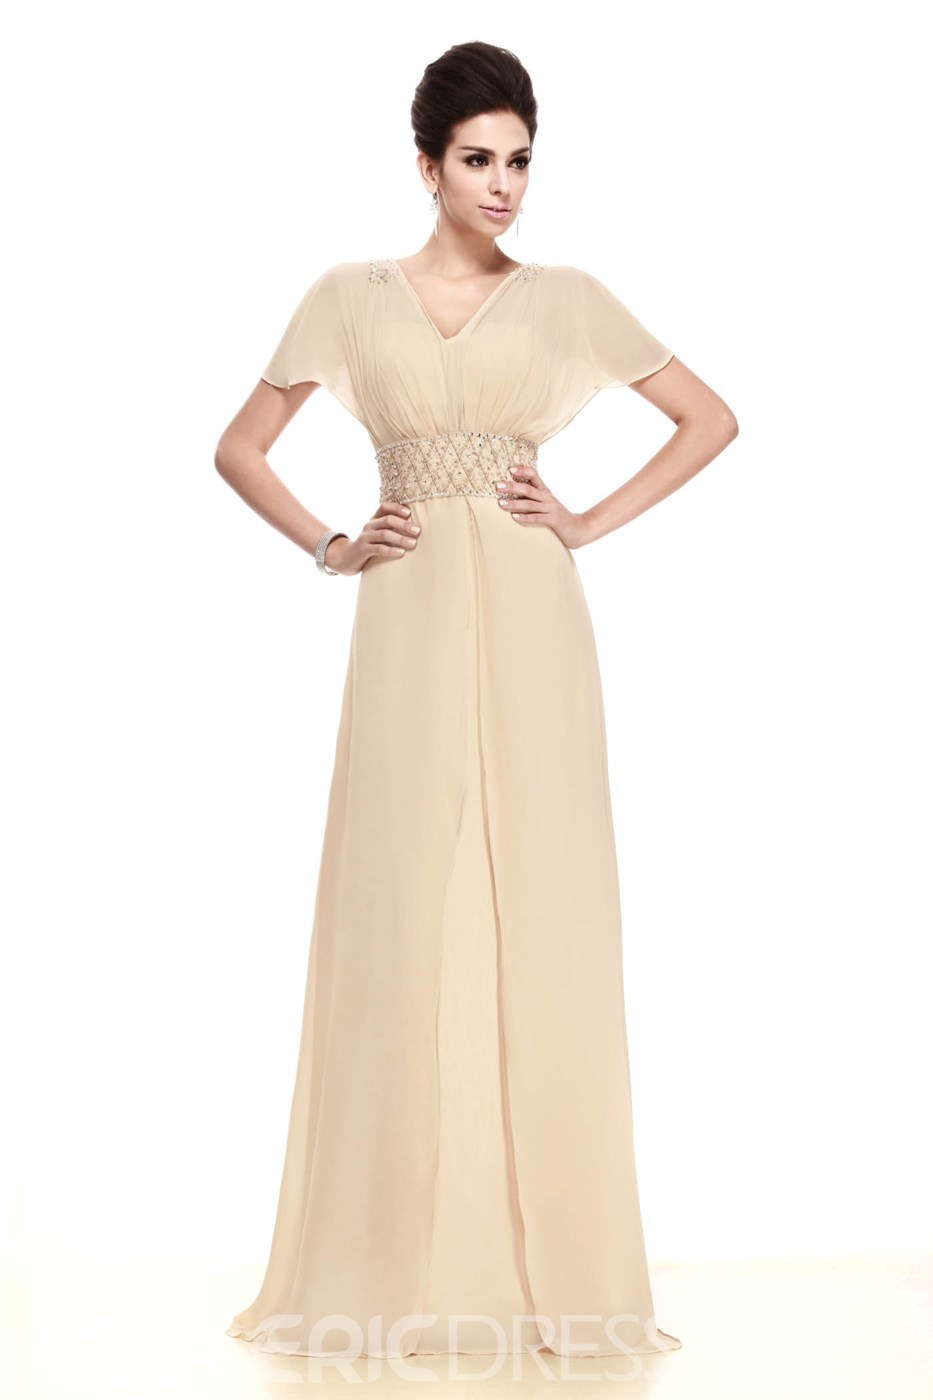 Elegant Sheath/Column Short Sleeves Floor Length Taline's Mother of the Bride Dress